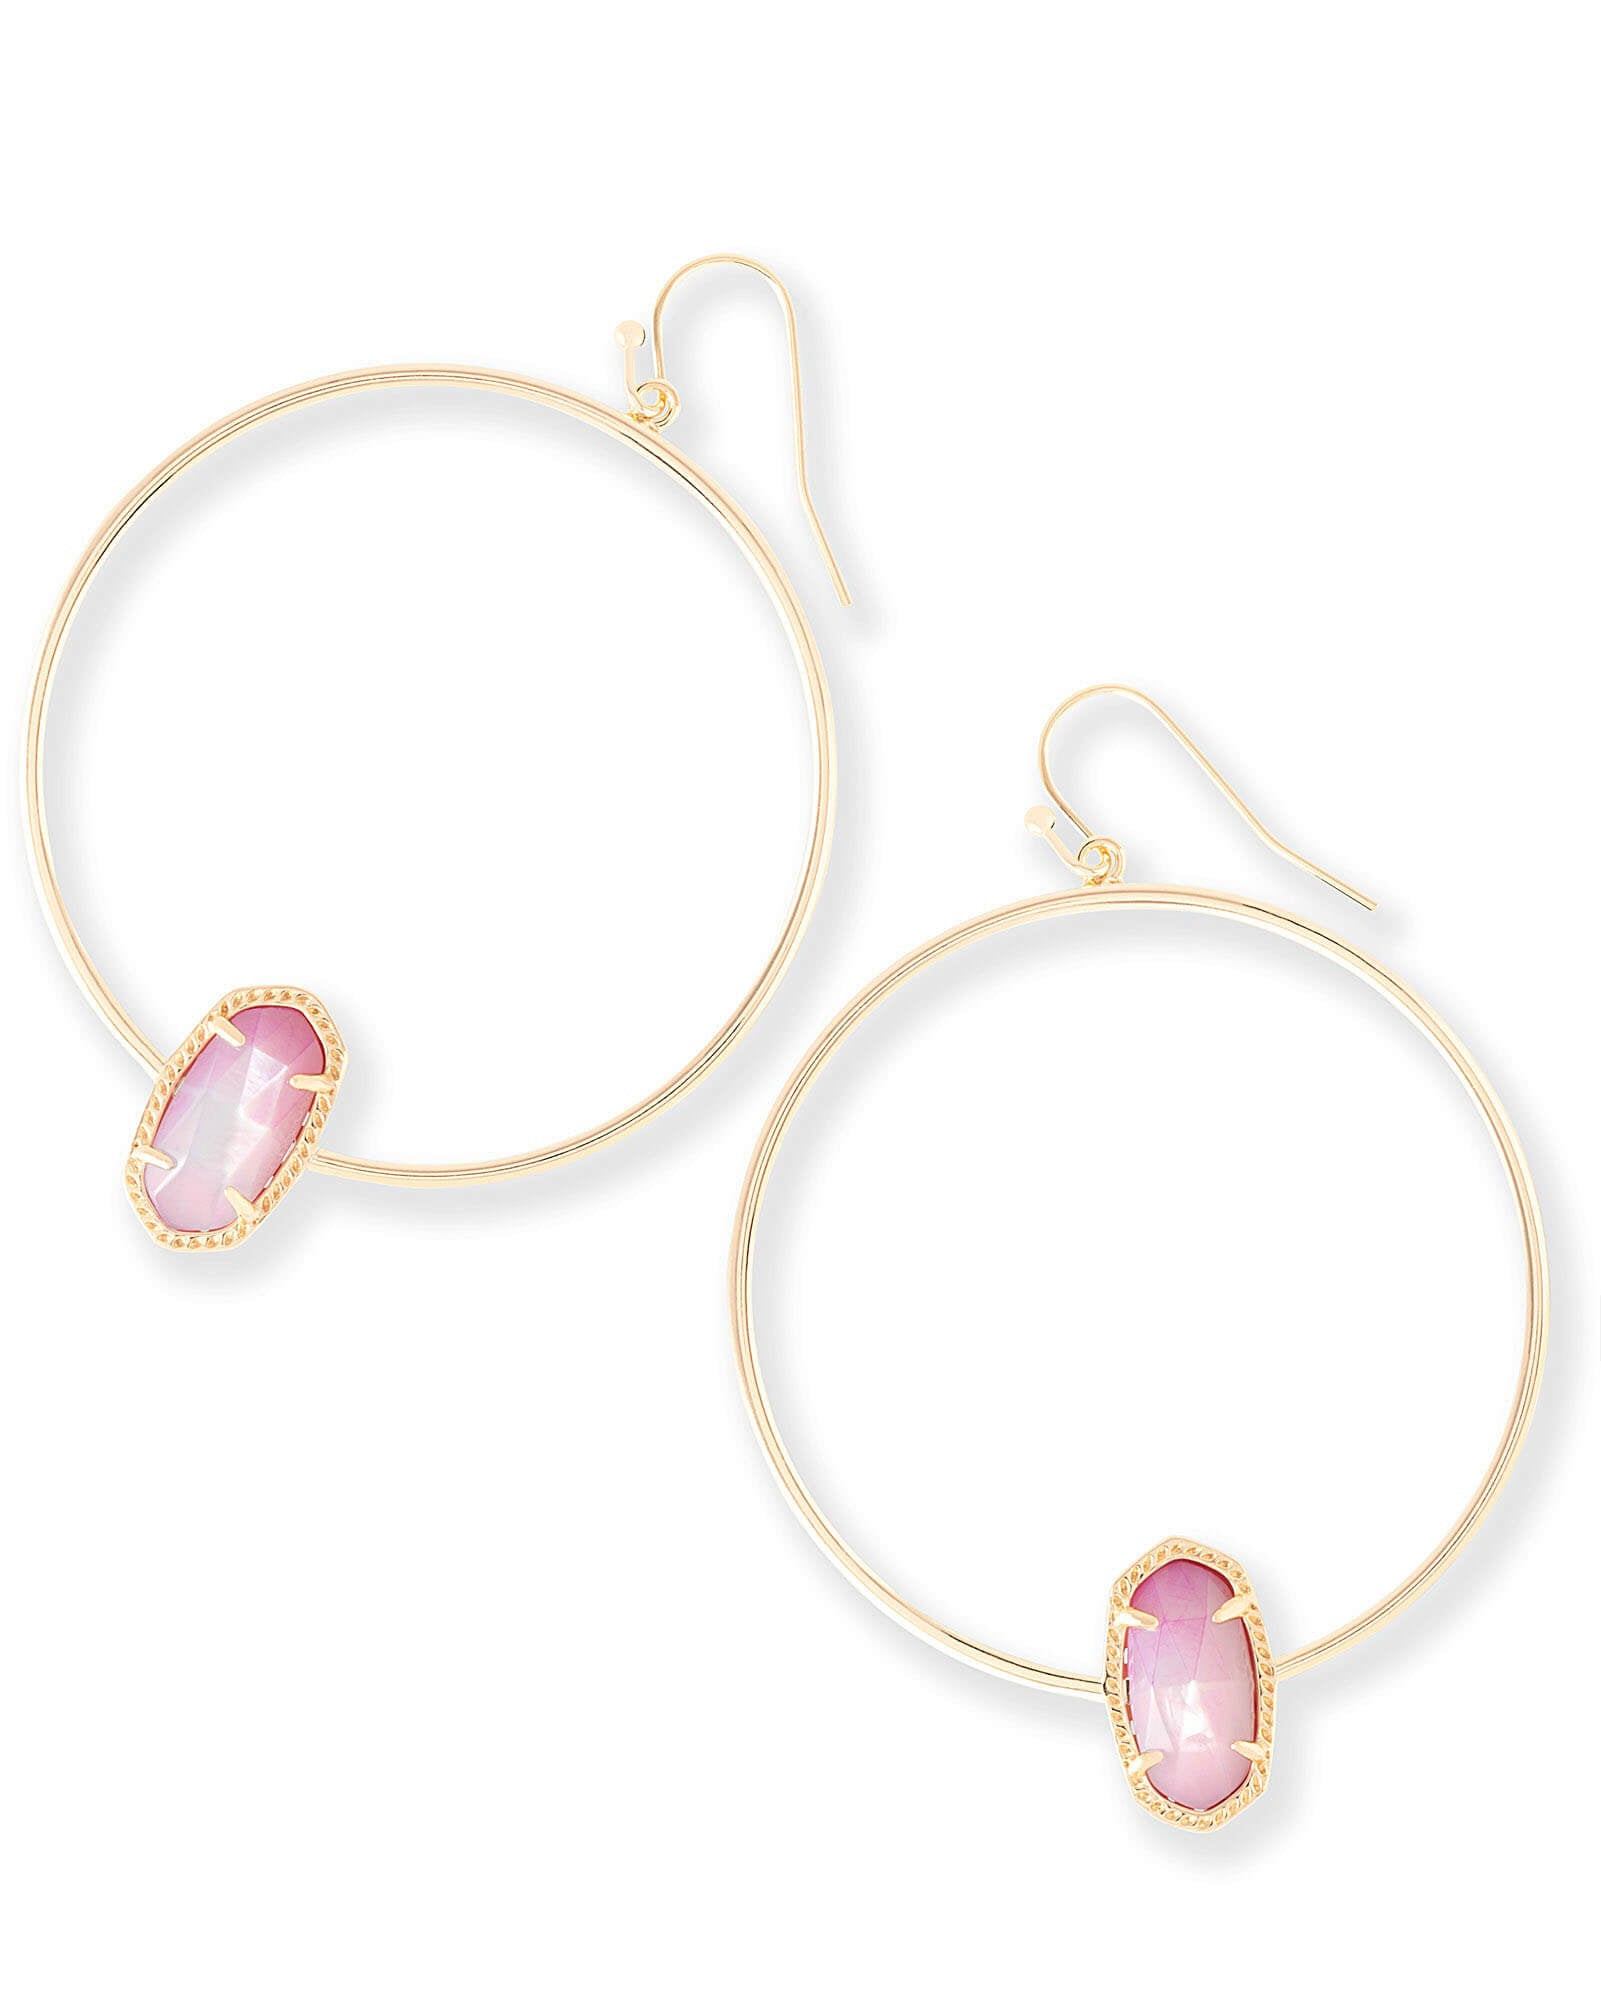 gold hoop missoma lewis main john johnlewis magna online rsp at jewellery pdp earrings com buymissoma molten